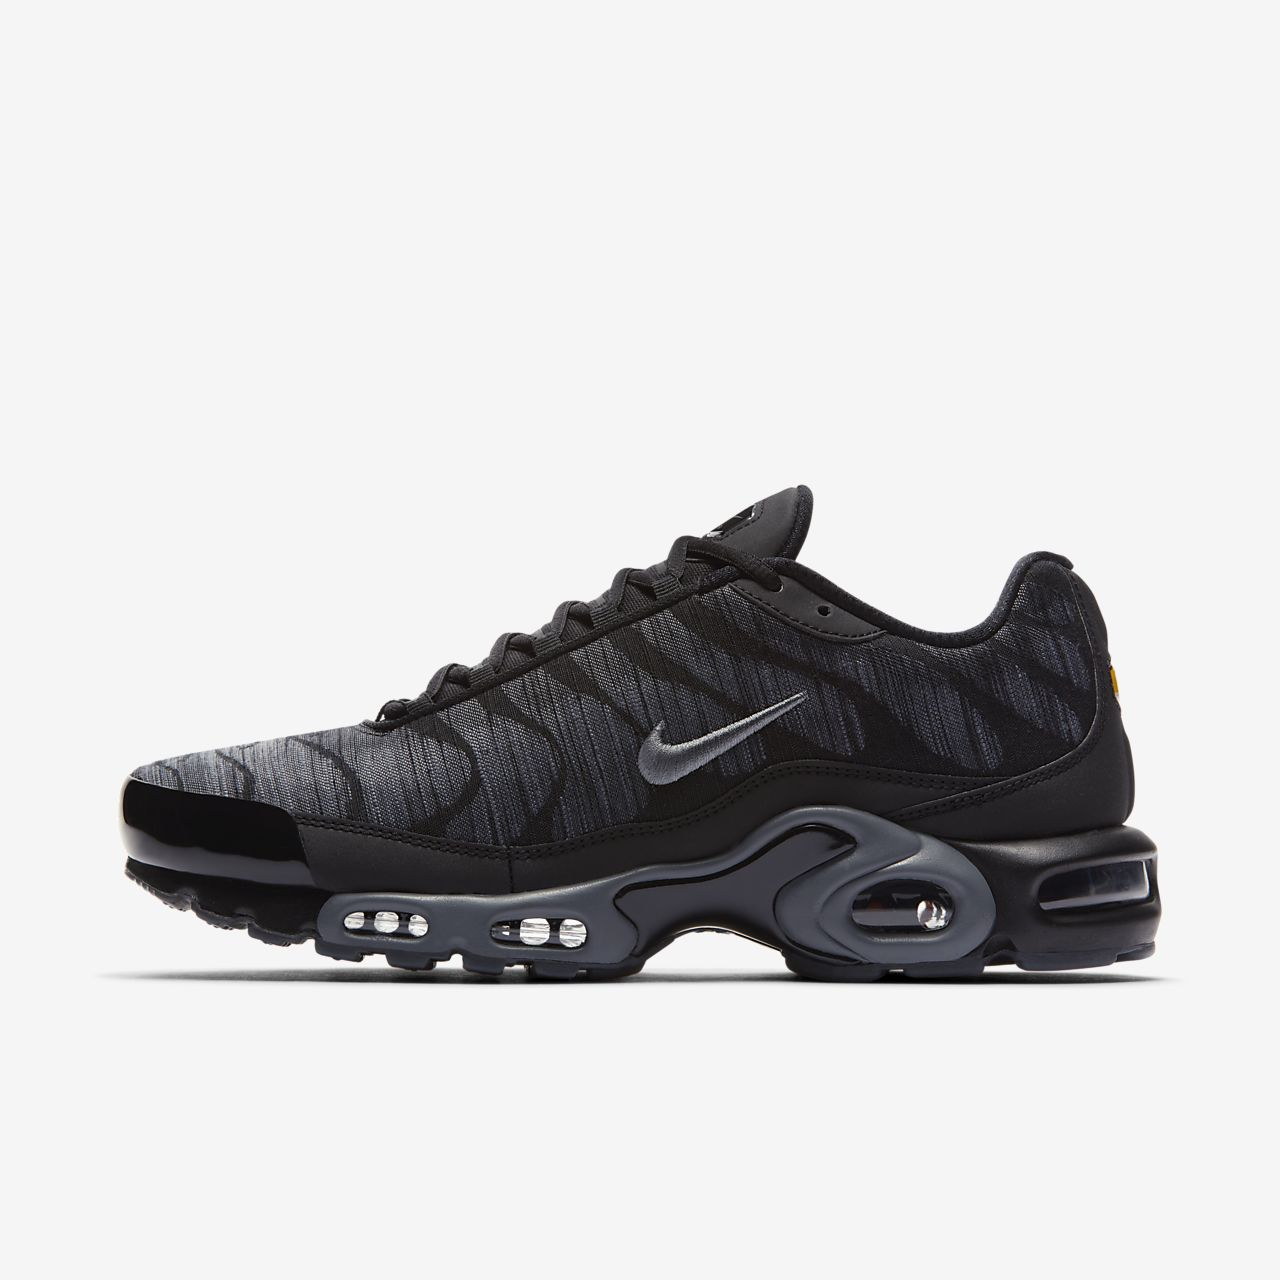 nike air max plus jacquard men 39 s shoe gb. Black Bedroom Furniture Sets. Home Design Ideas